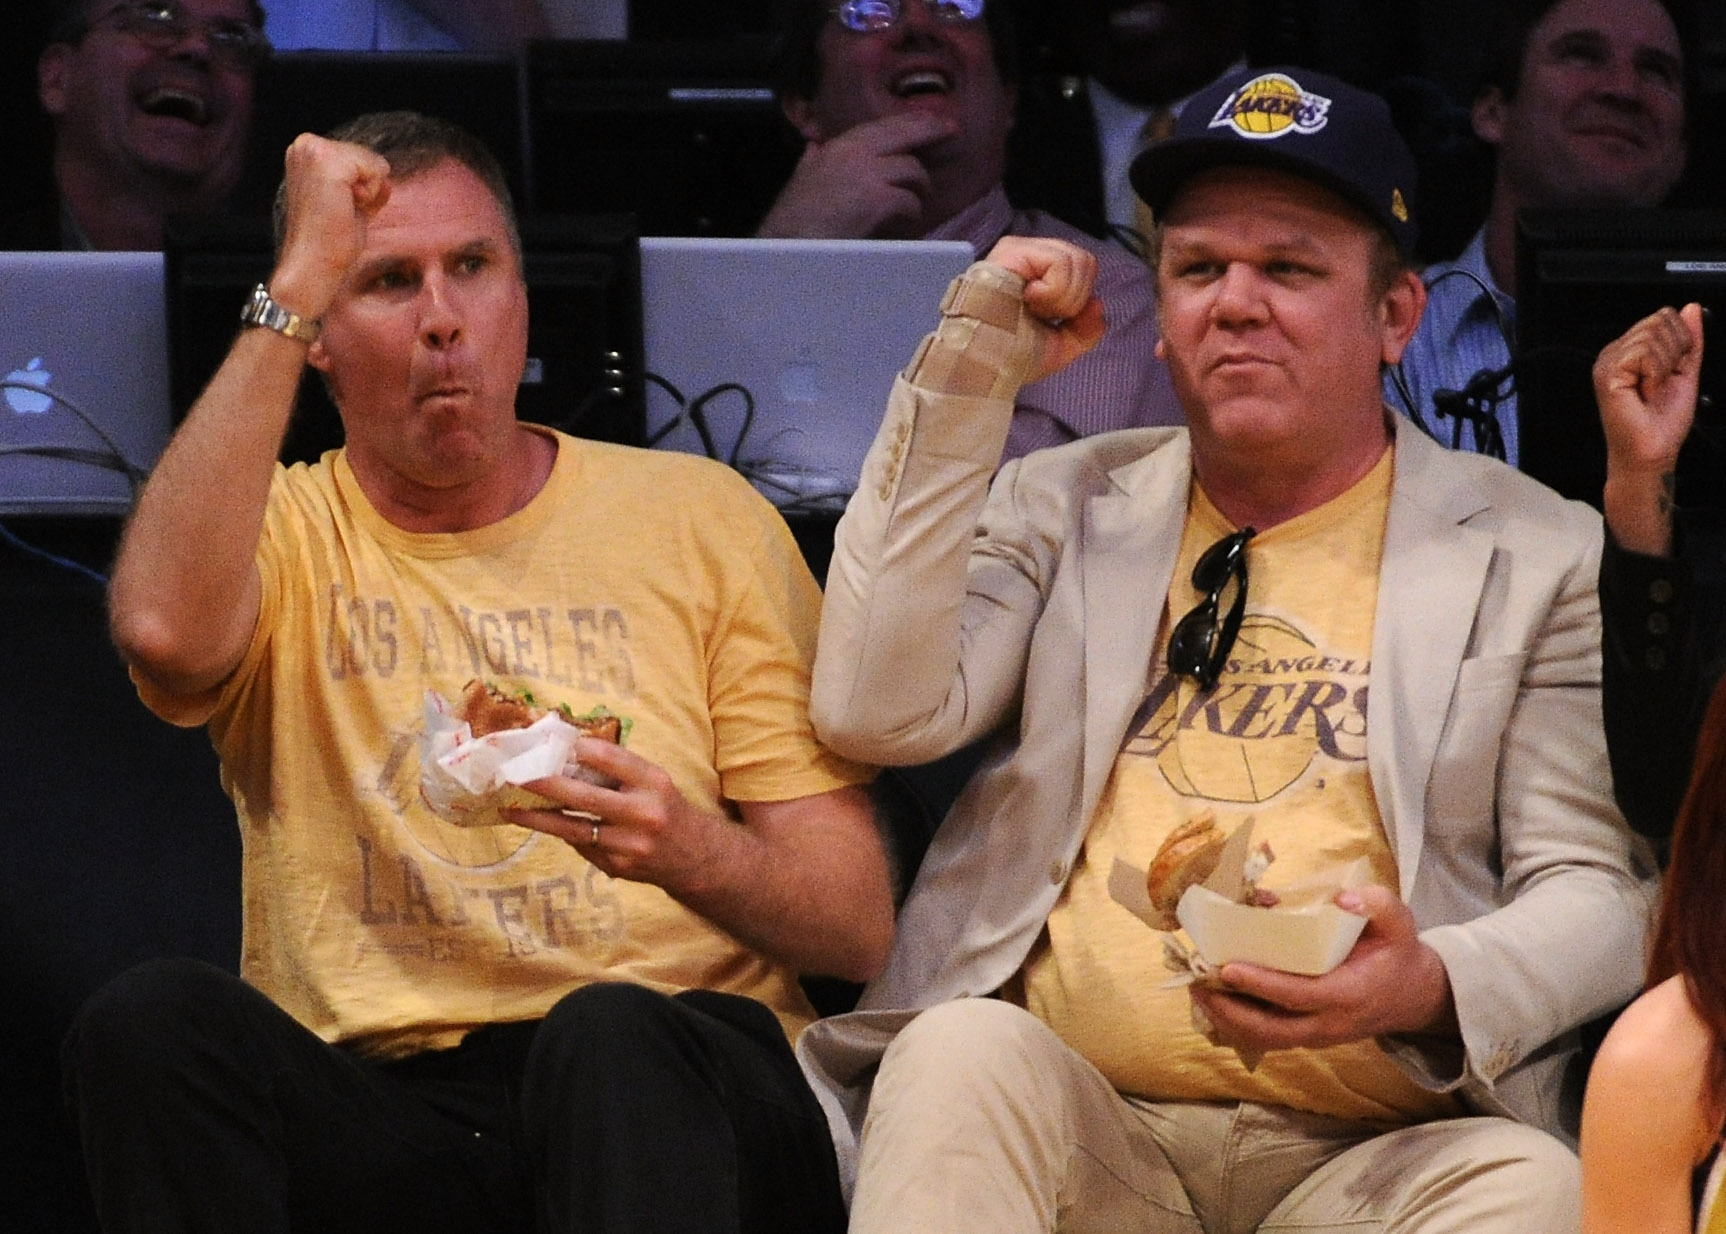 LOS ANGELES, CA - MAY 02:  (L-R) Actors Will Ferrell and John C. Reilly sit courtside during Game One of the Western Conference Semifinals in the 2011 NBA Playoffs between the Los Angeles Lakers and the Dallas Mavericks at Staples Center on May 2, 2011 in